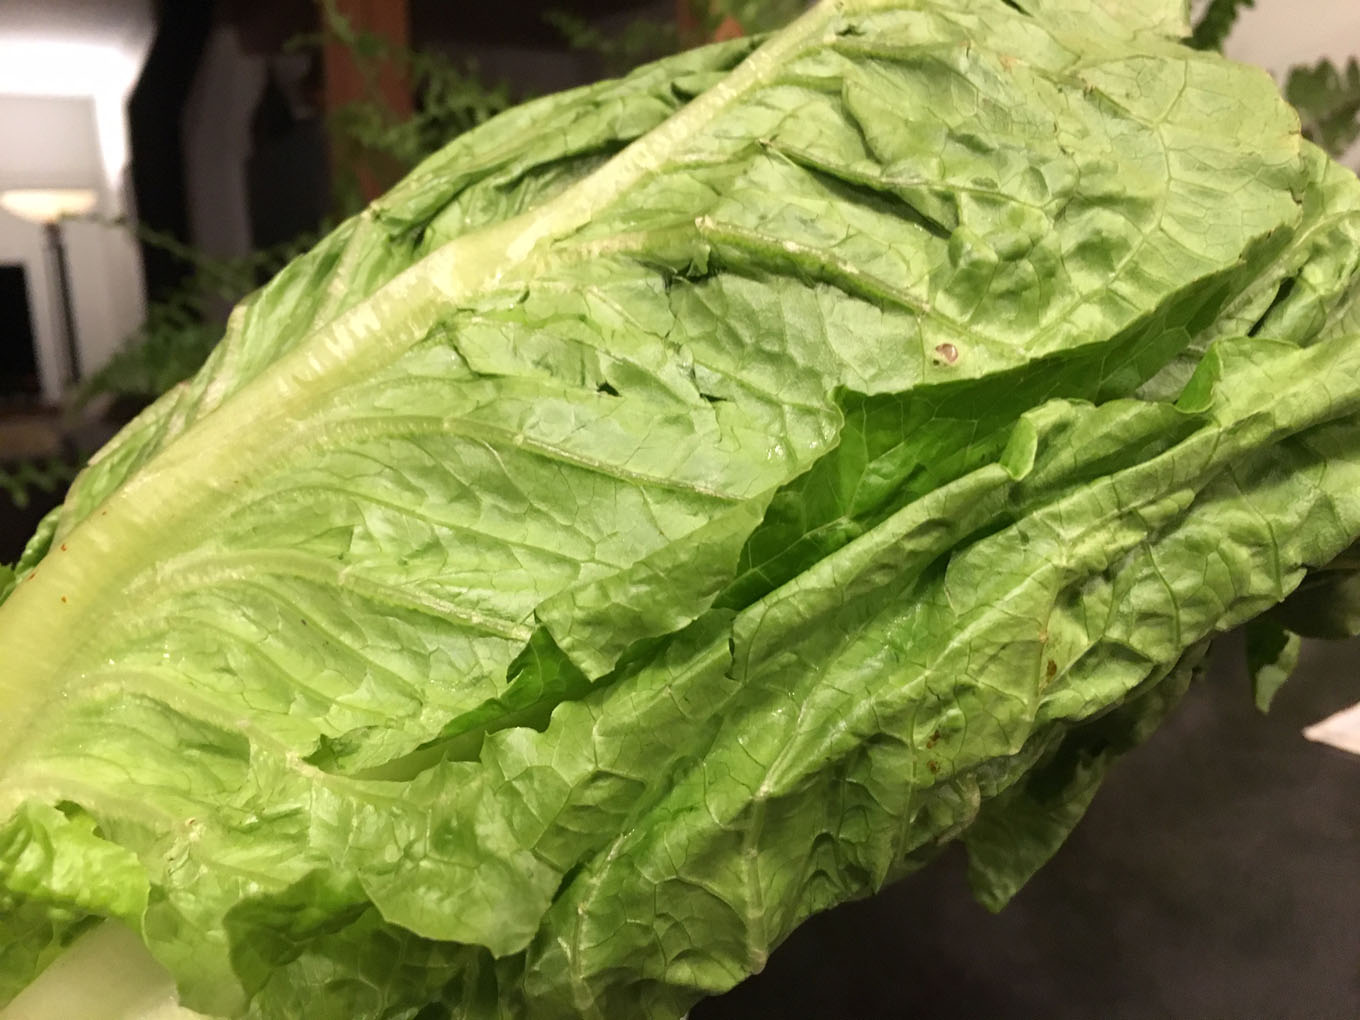 E. Coli Outbreak in Ontario, Quebec Linked to Romaine Lettuce